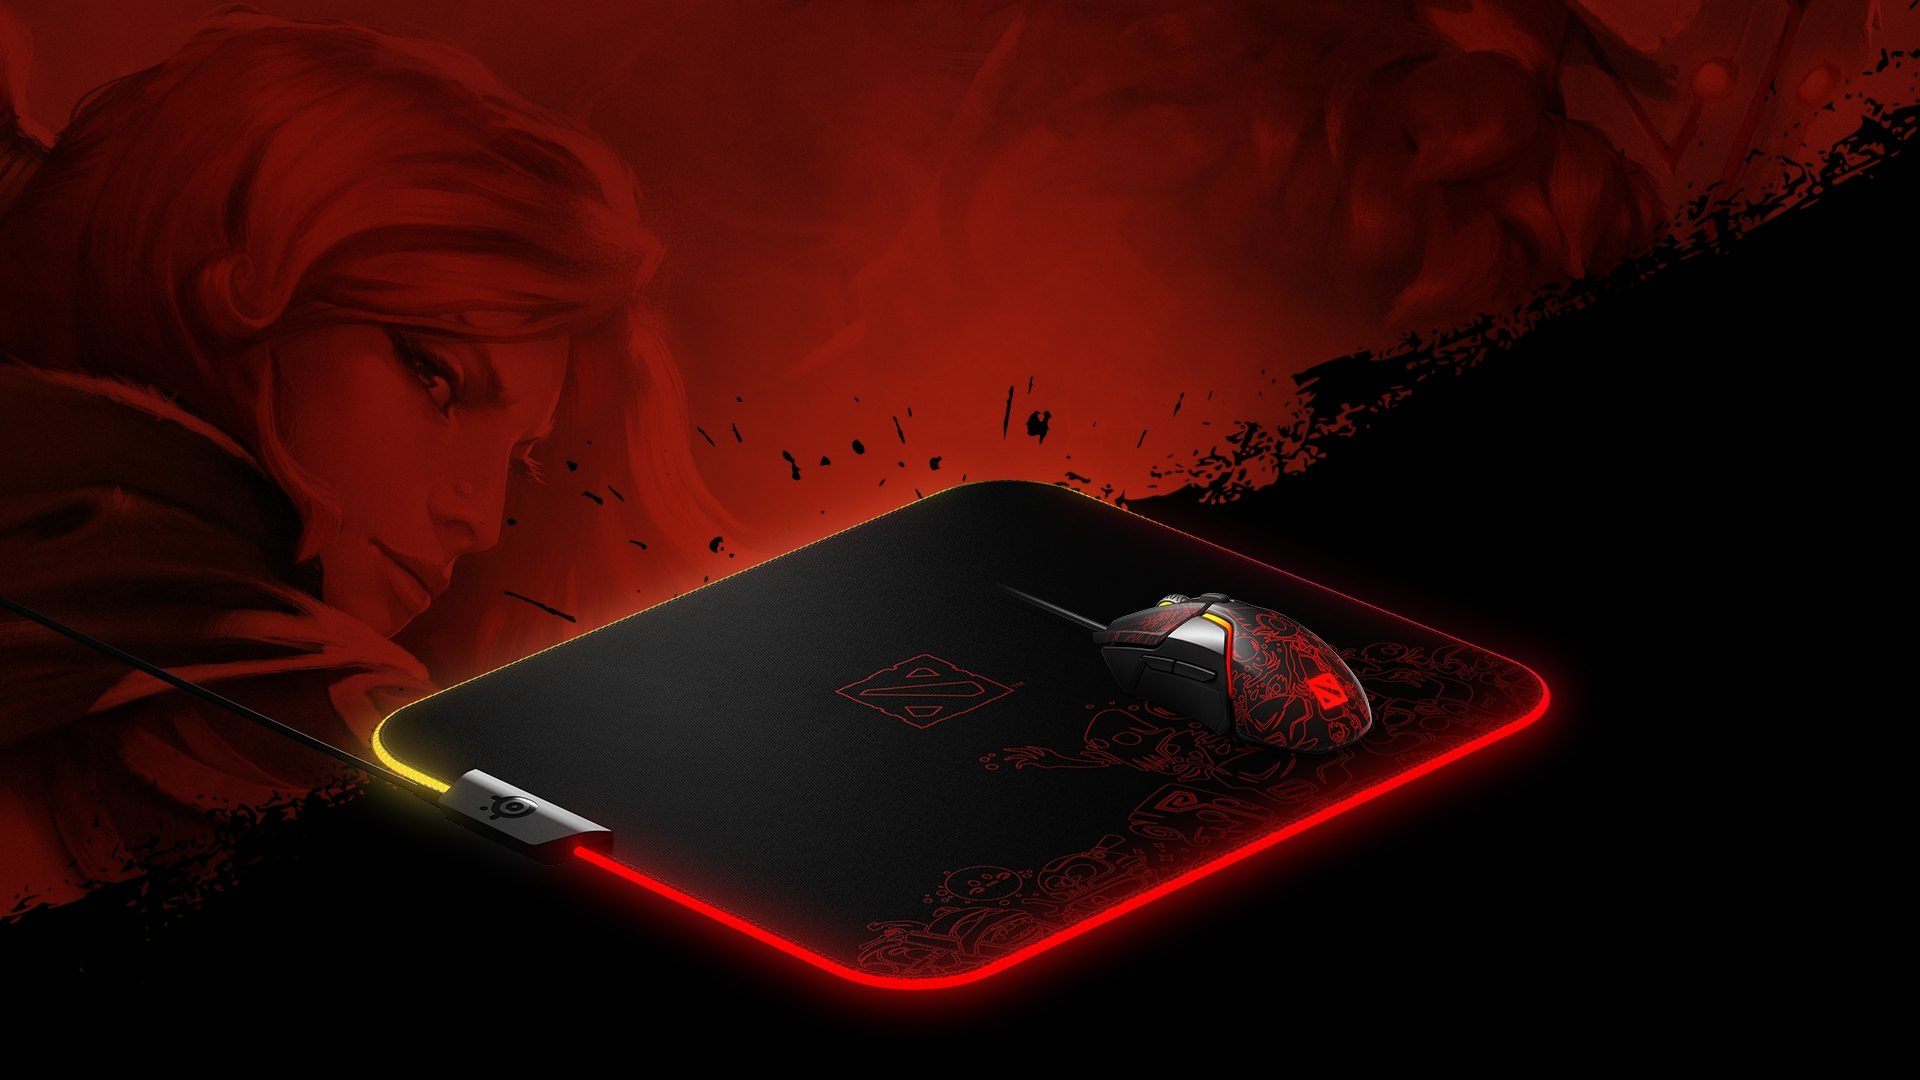 STEELSERIES X DOTA 2